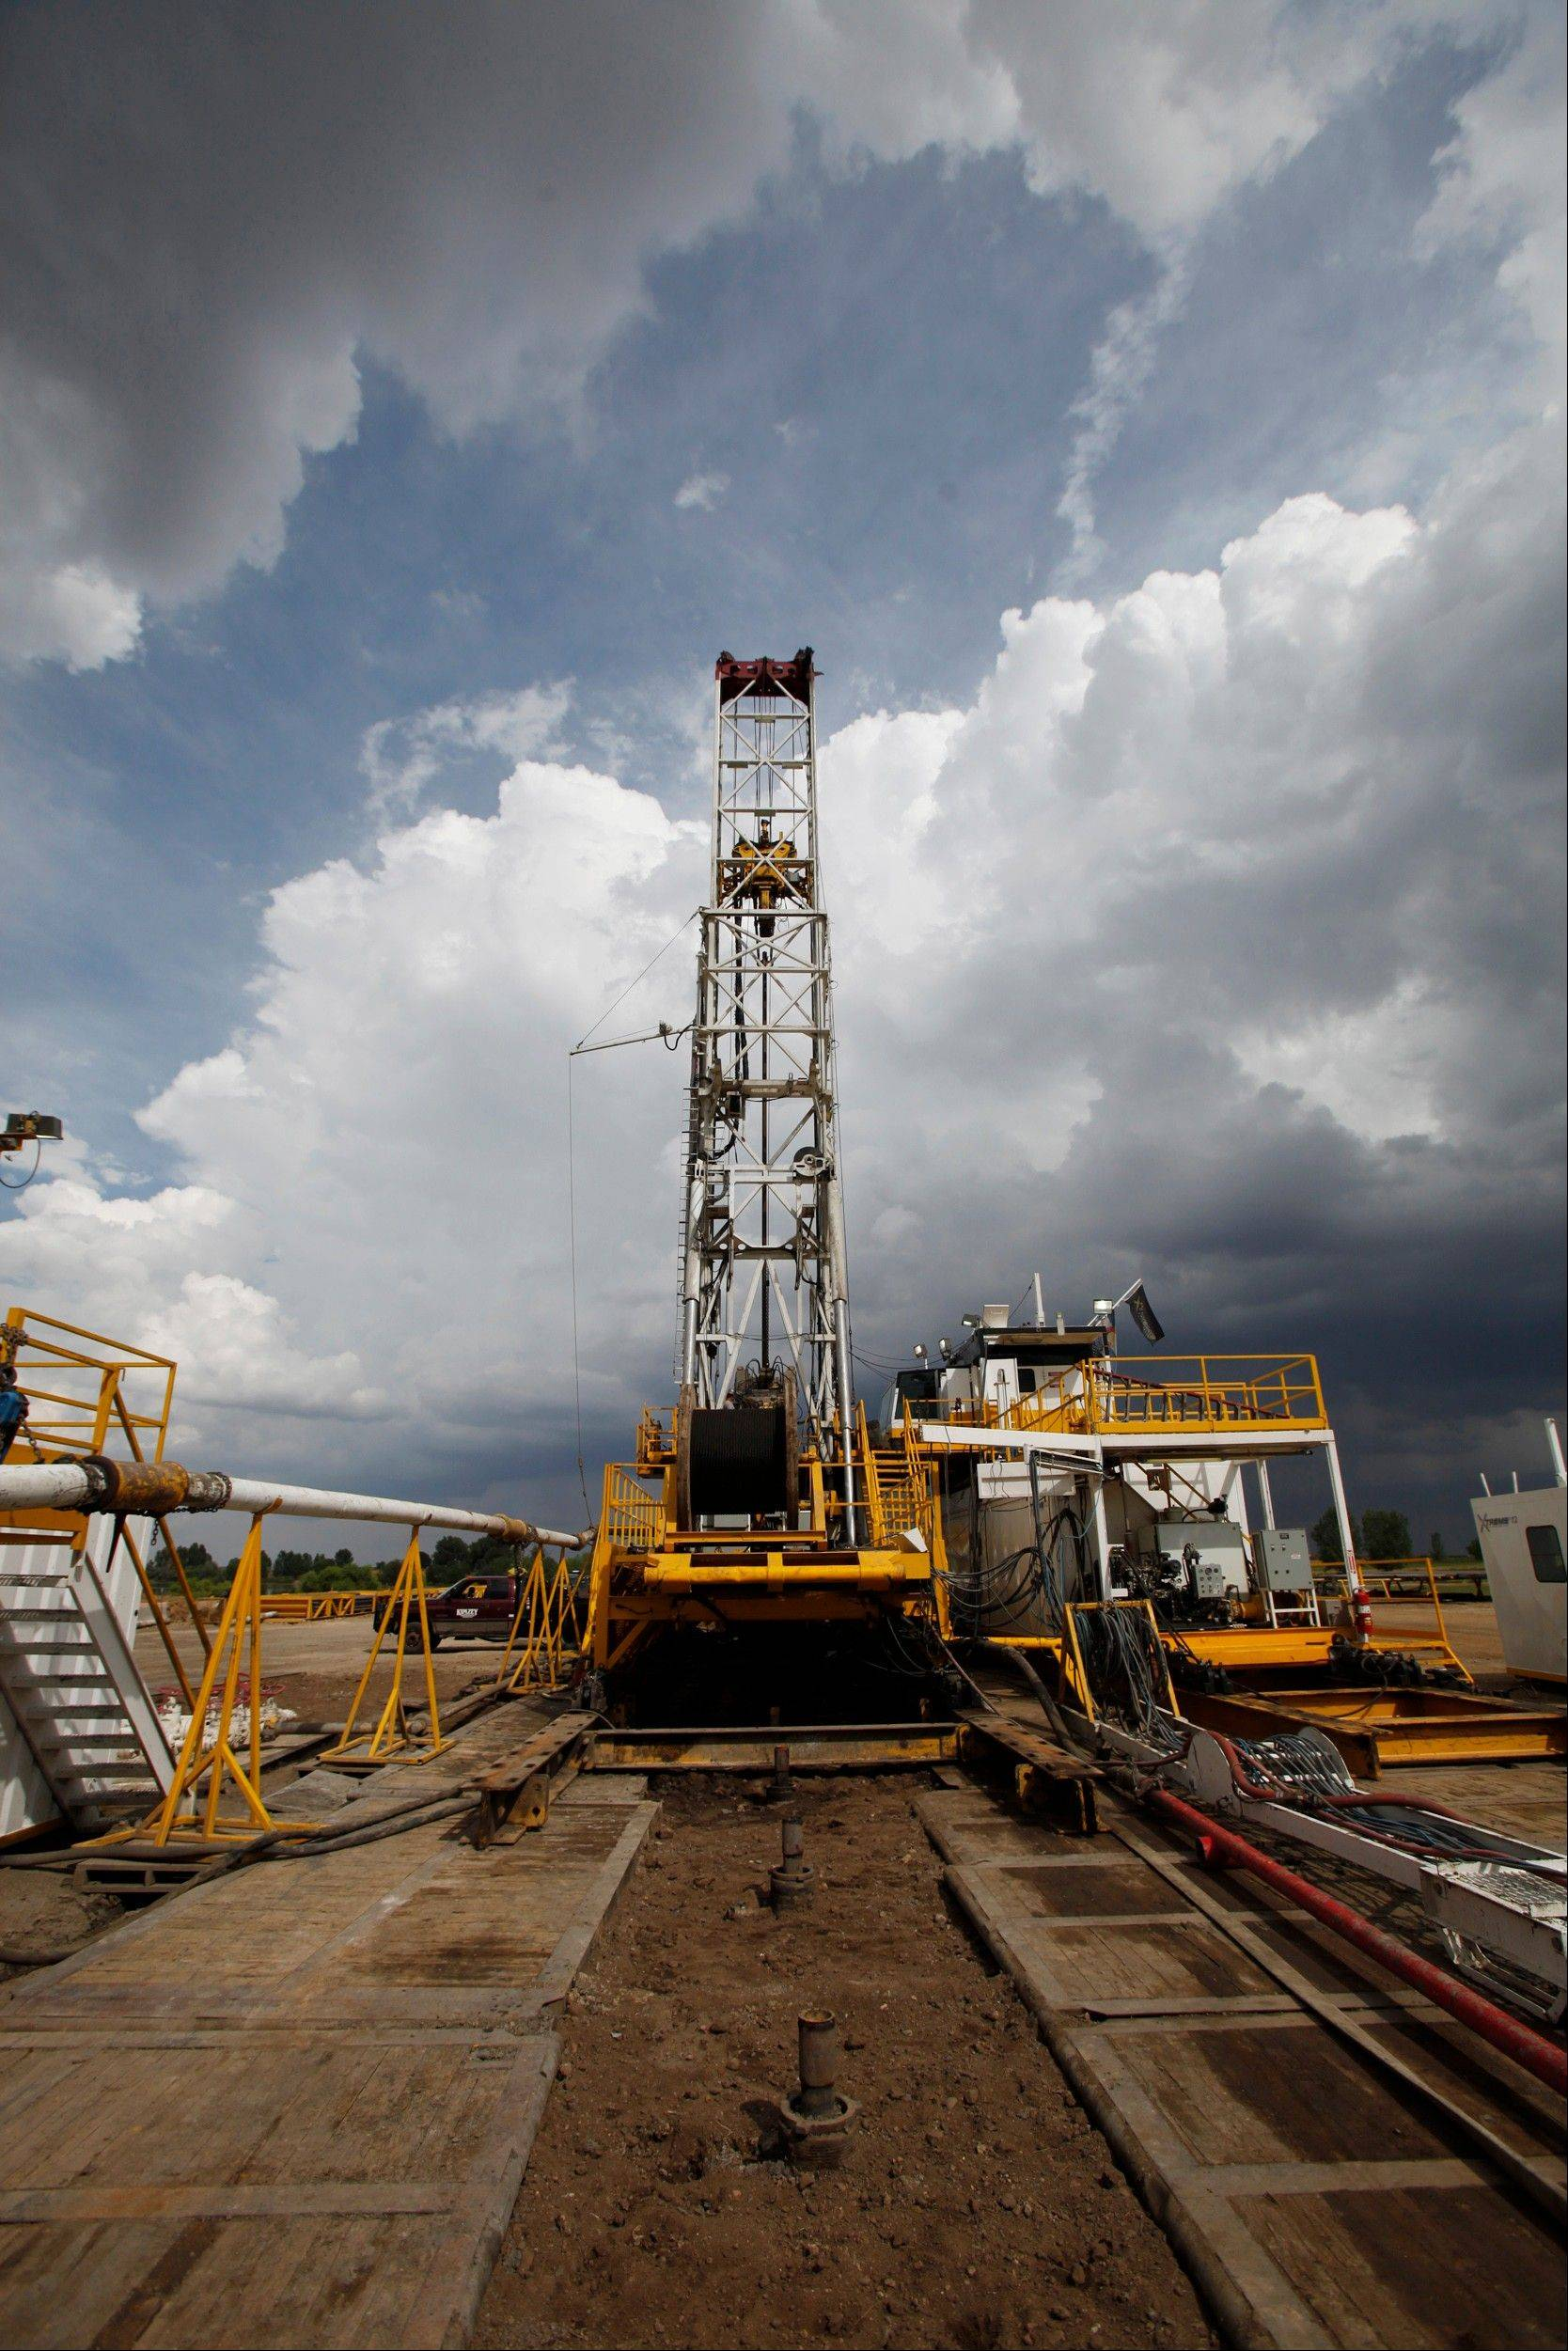 This Aug. 25, 2009. file photo shows capped wells in the foreground as Anadarko Petroleum Corp., drills a series of wells on a pad on a Weld County farm near Mead, Colo. in the northeastern part of the state. The drilling process called hydraulic fracturing, or fracking, is shaking up world energy markets from Washington to Moscow to Beijing. Some predict what was once unthinkable: that the U.S. won�t need to import natural gas in the near future, and that Russia could be the big loser.